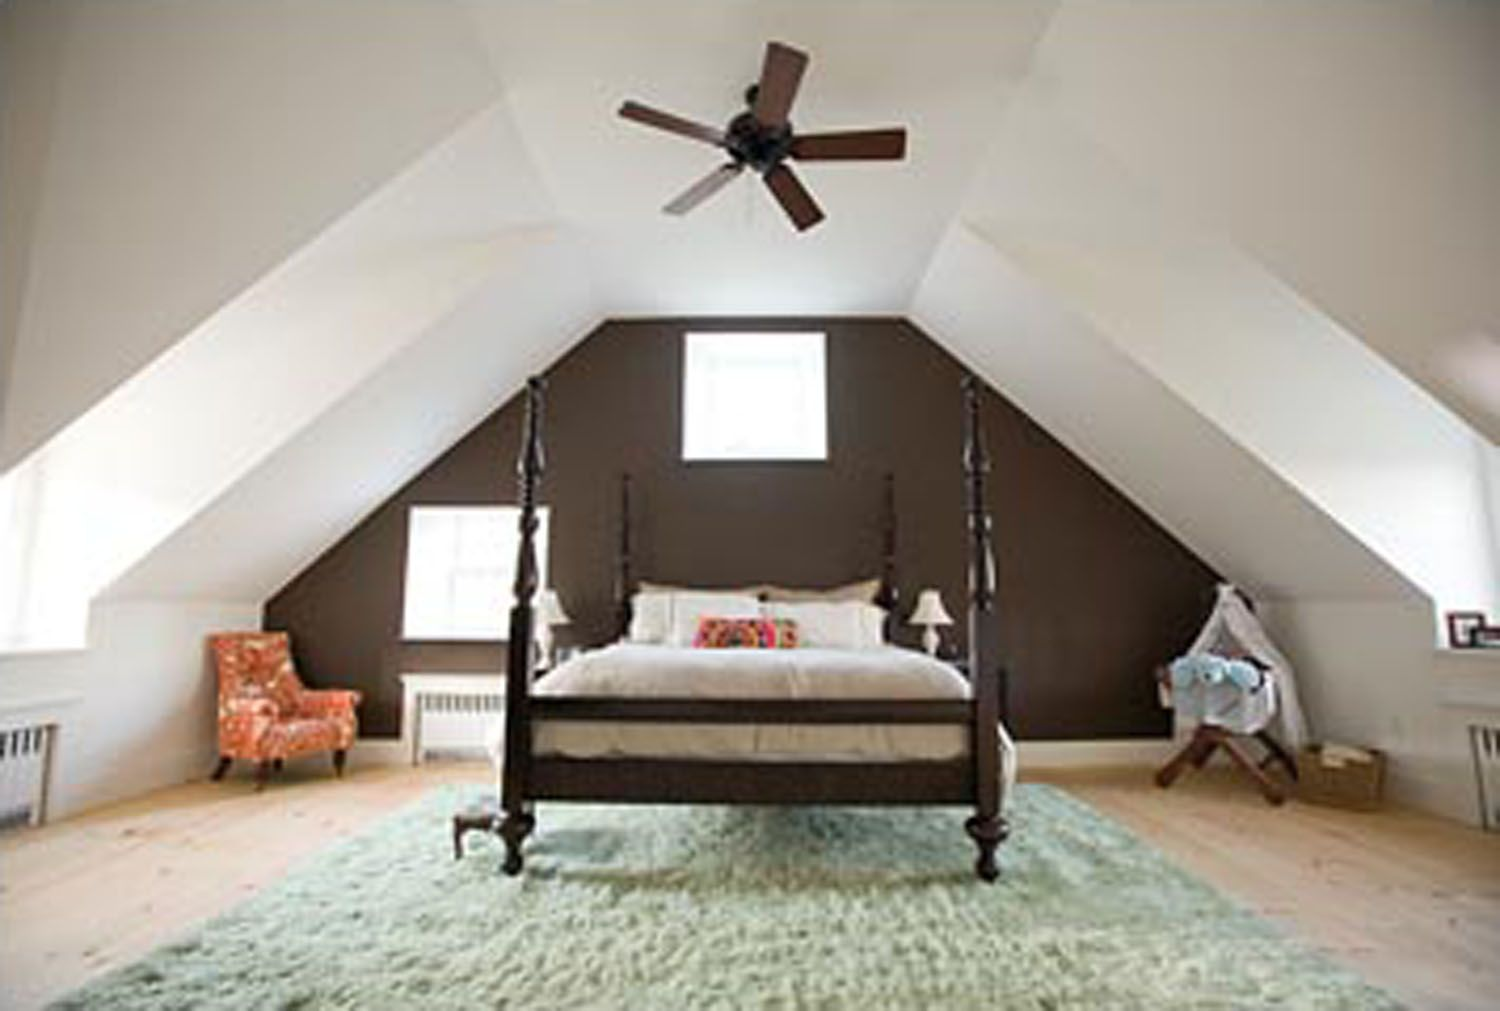 Bed Suspended From Ceiling Attic Bedrooms With Slanted Walls Home Design